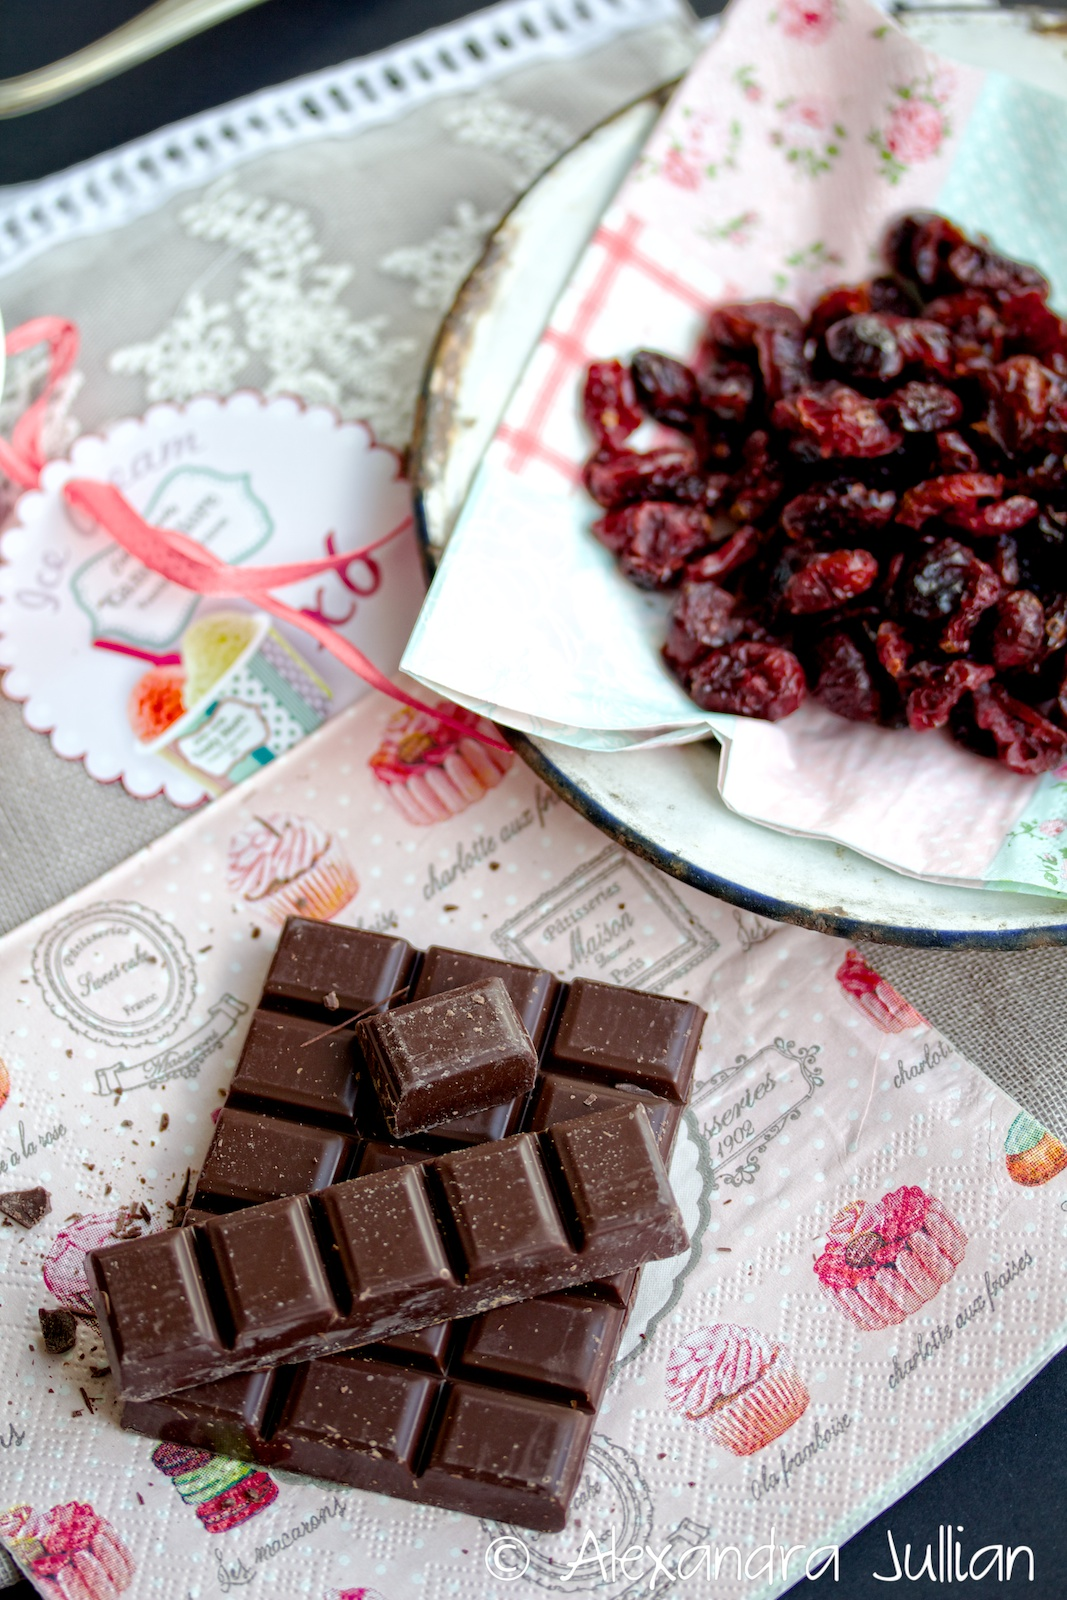 Cookies aux graines de lin, cranberries et chocolat